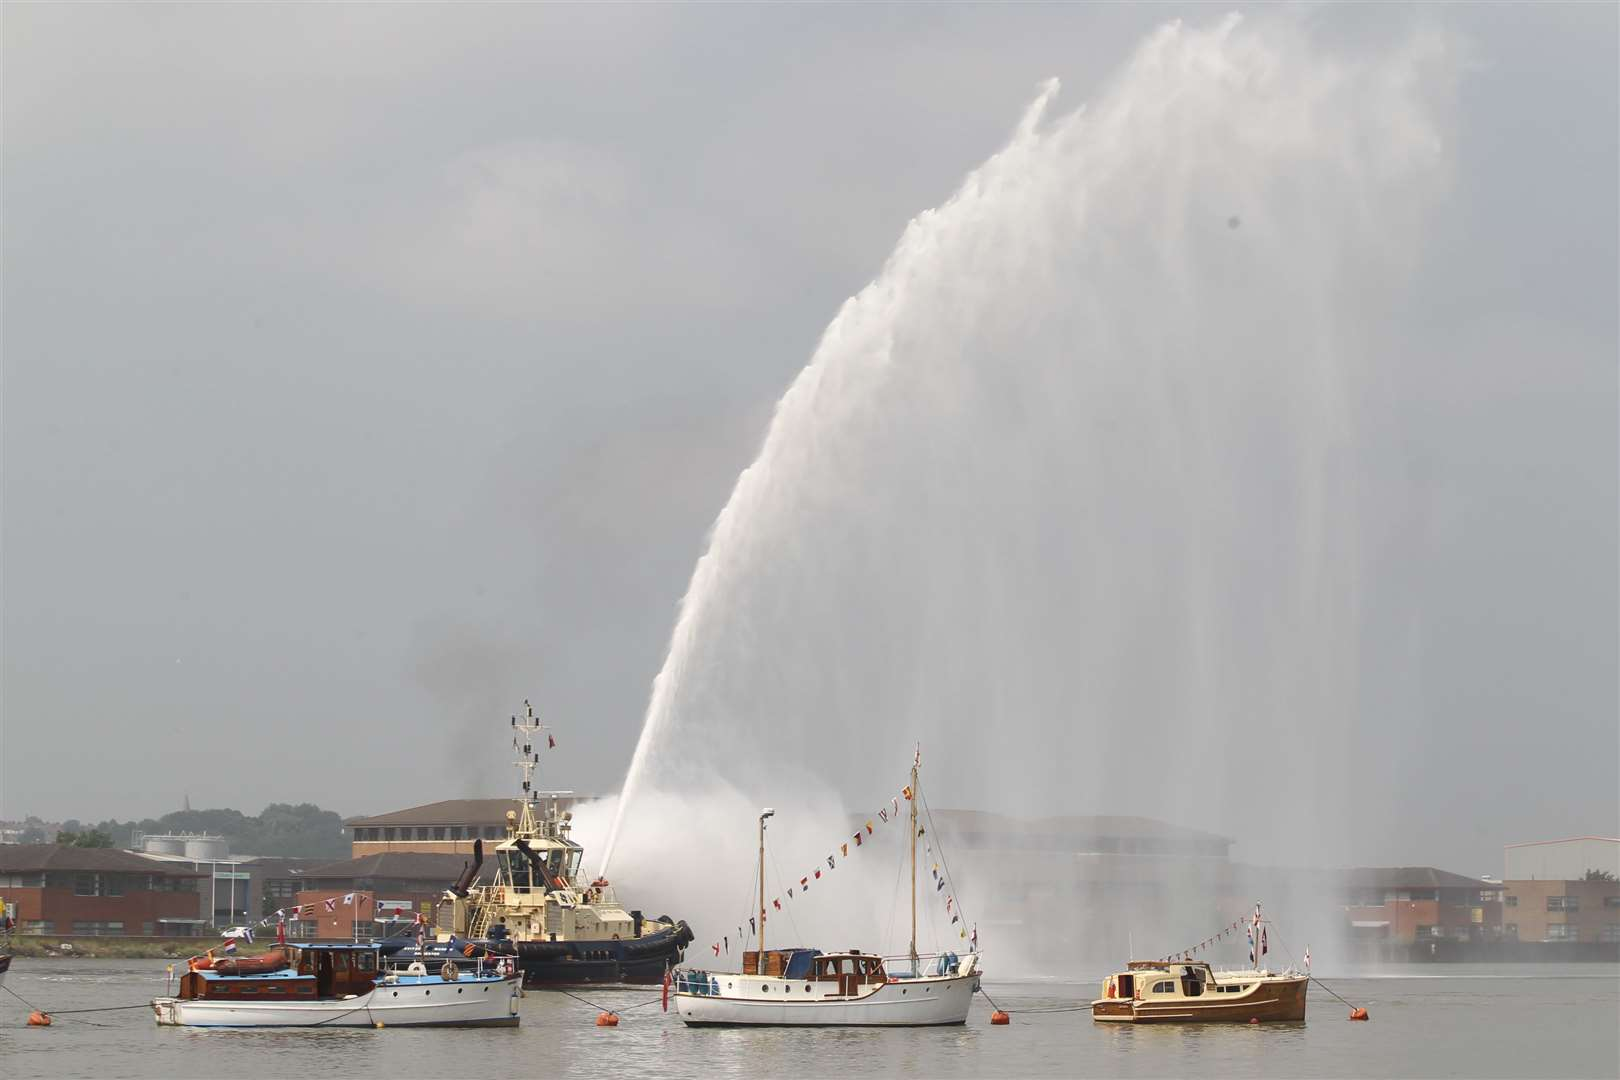 A fire boat shoots water in the air at The Medway River Festival